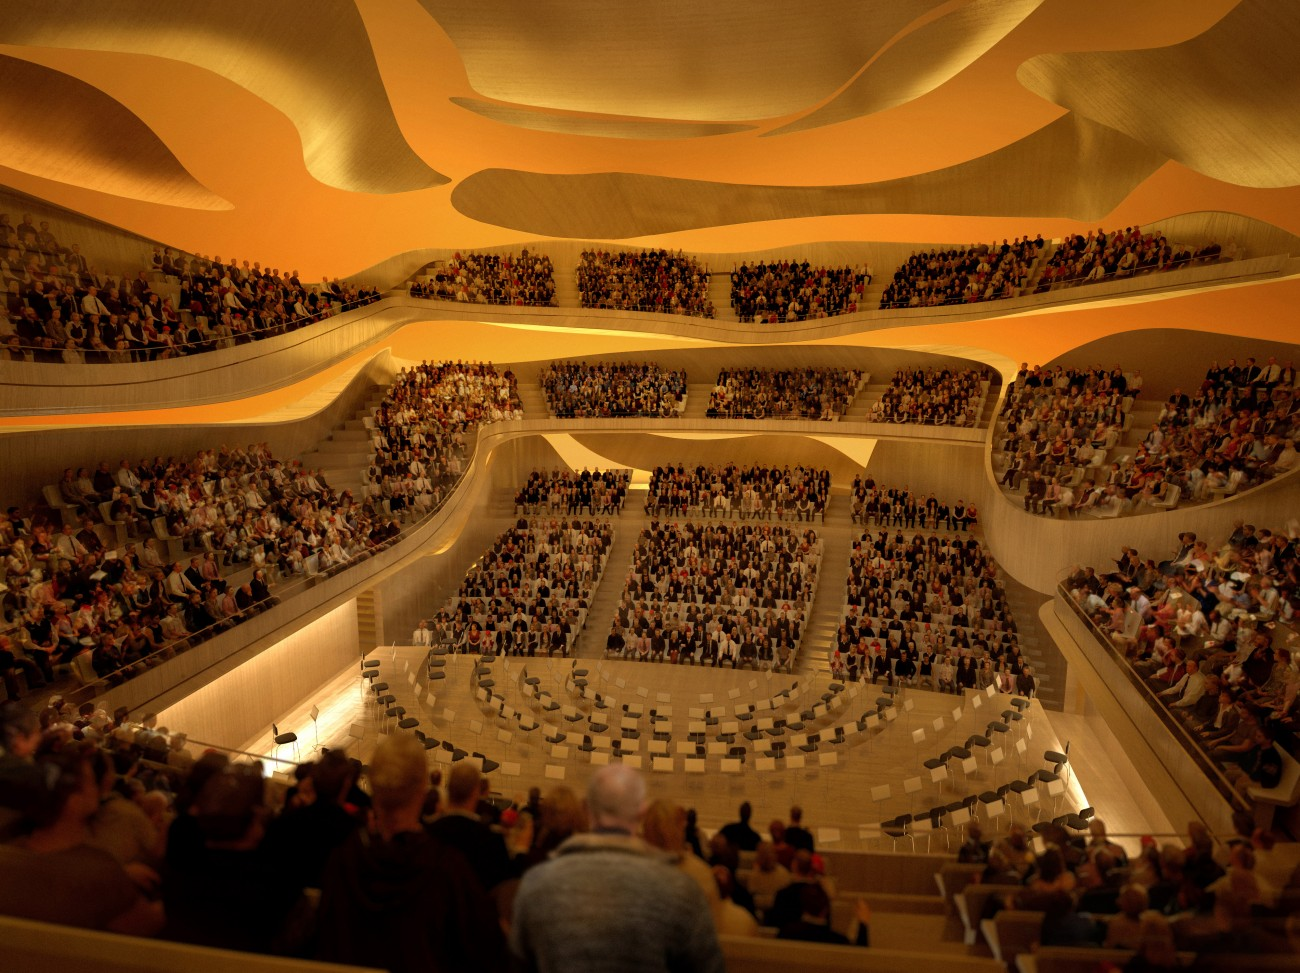 interieur_salle_2_c_philharmonie_de_paris_arte_factory